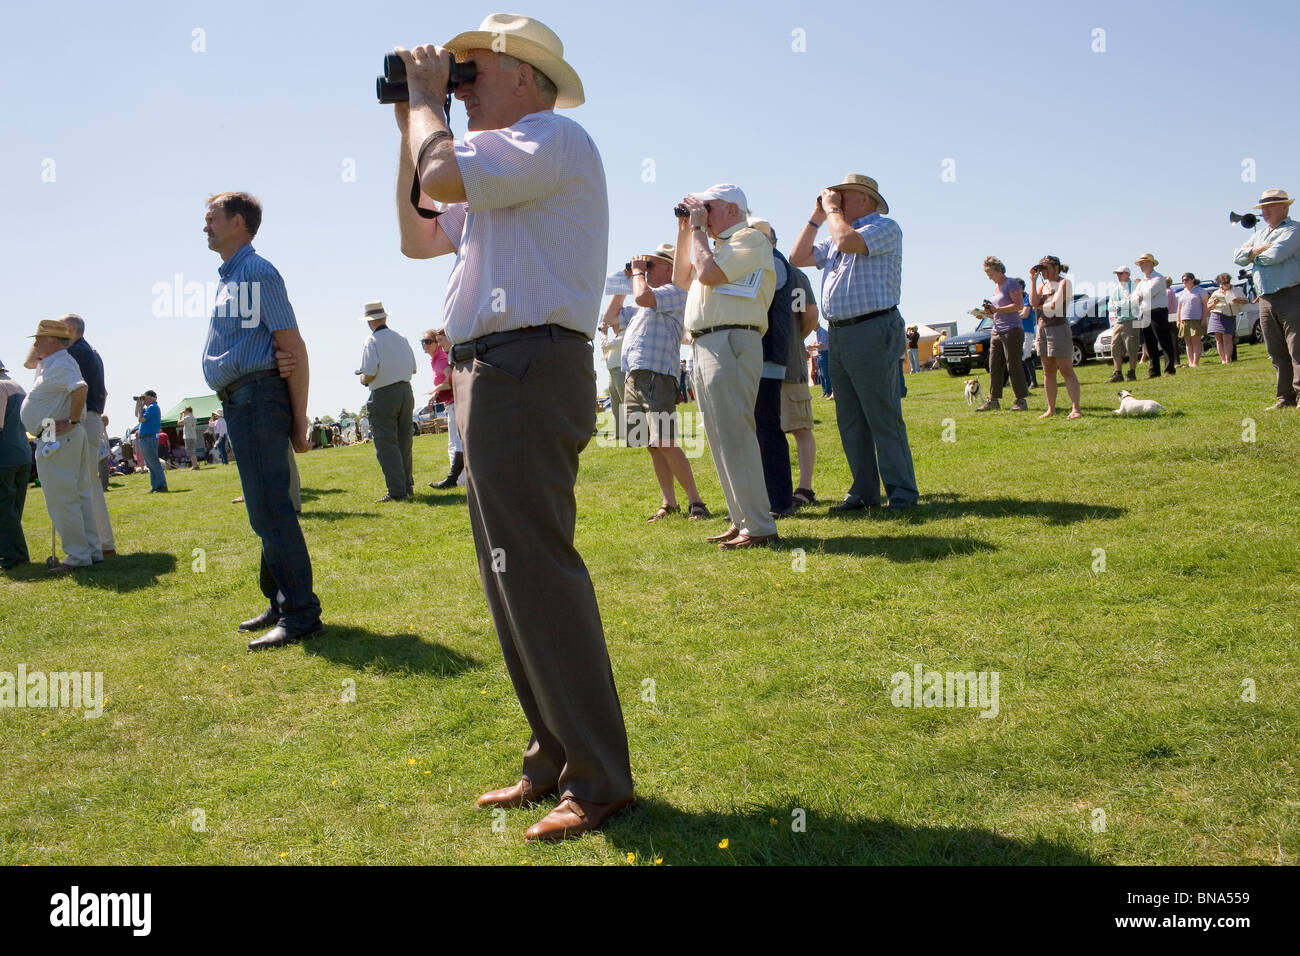 A man in a sun hat looks through a pair of binoculars on a hot summer day in the Engliah countryside. - Stock Image